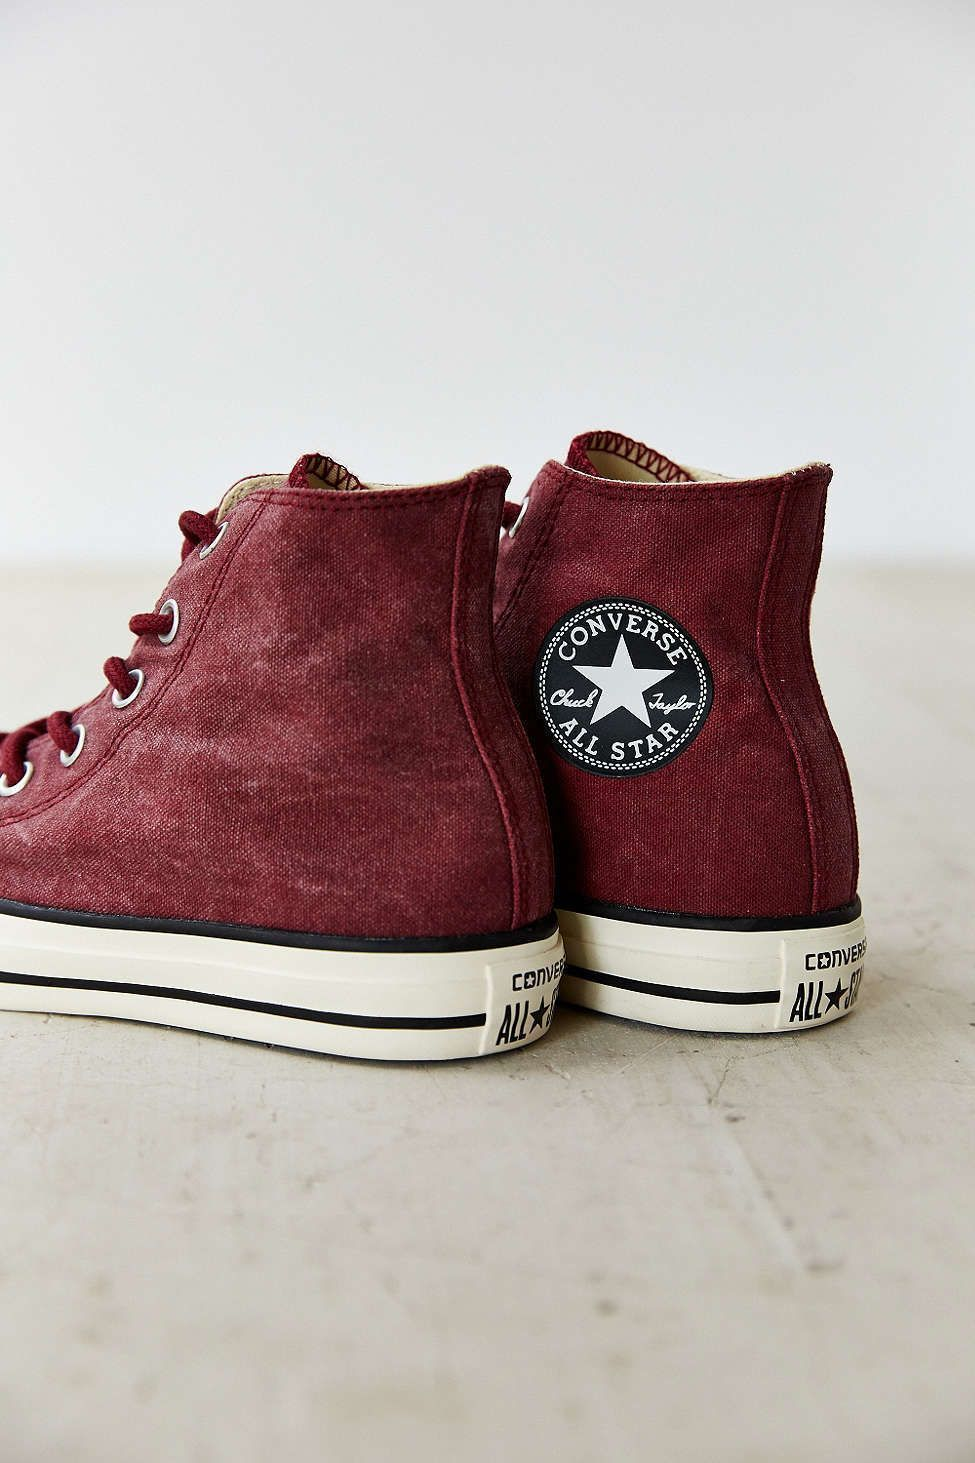 62edc9a8 Converse Chuck Taylor All Stars Washed High-Top Men's Sneaker  #sneakersconverse #hightopsneakers